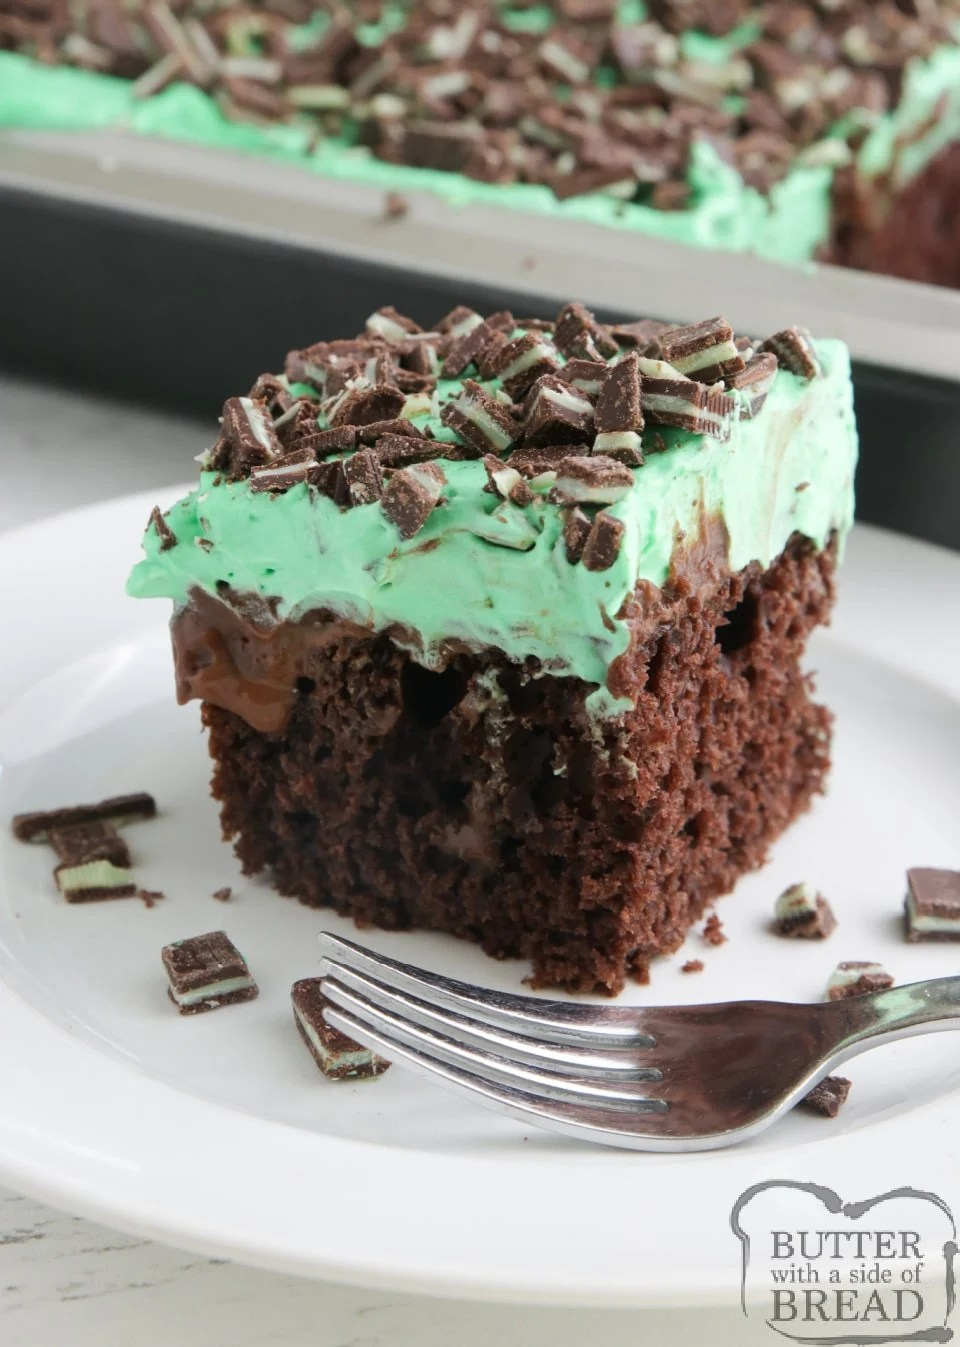 Mint Chocolate Poke Cakemade with acake mix, hot fudge, chocolate pudding and a mint flavored whipped cream topped with chopped Andes mints. Decadent but easy chocolate cake recipe!